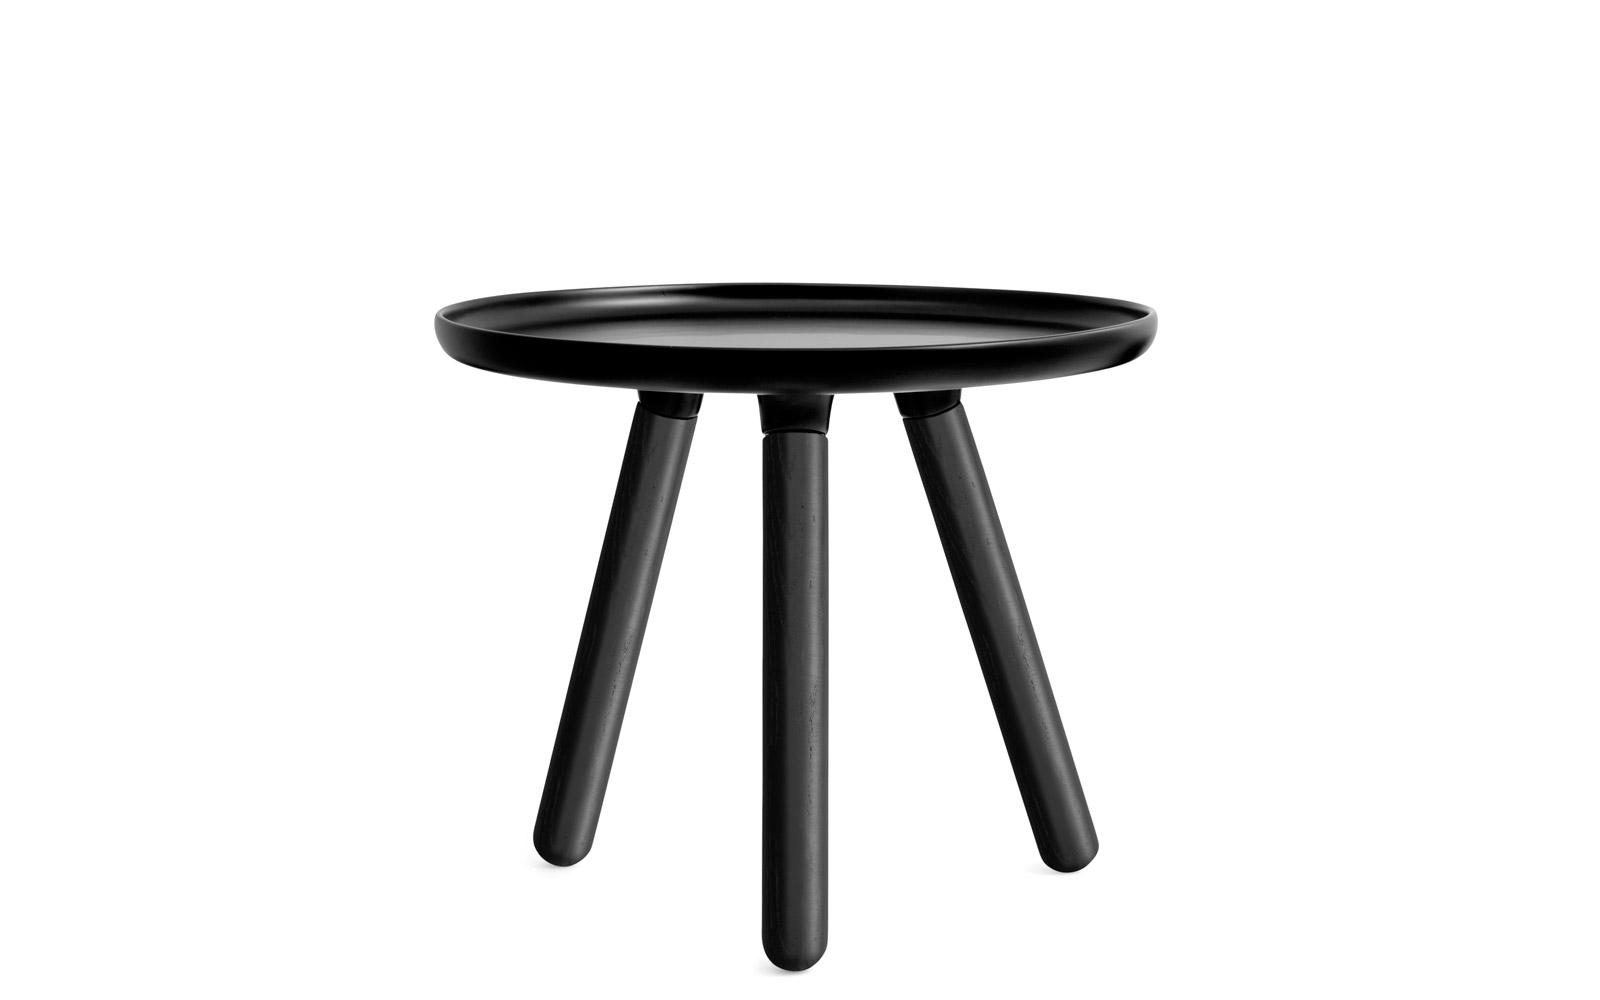 Tablo Table A minimalistic coffee table in black with legs of